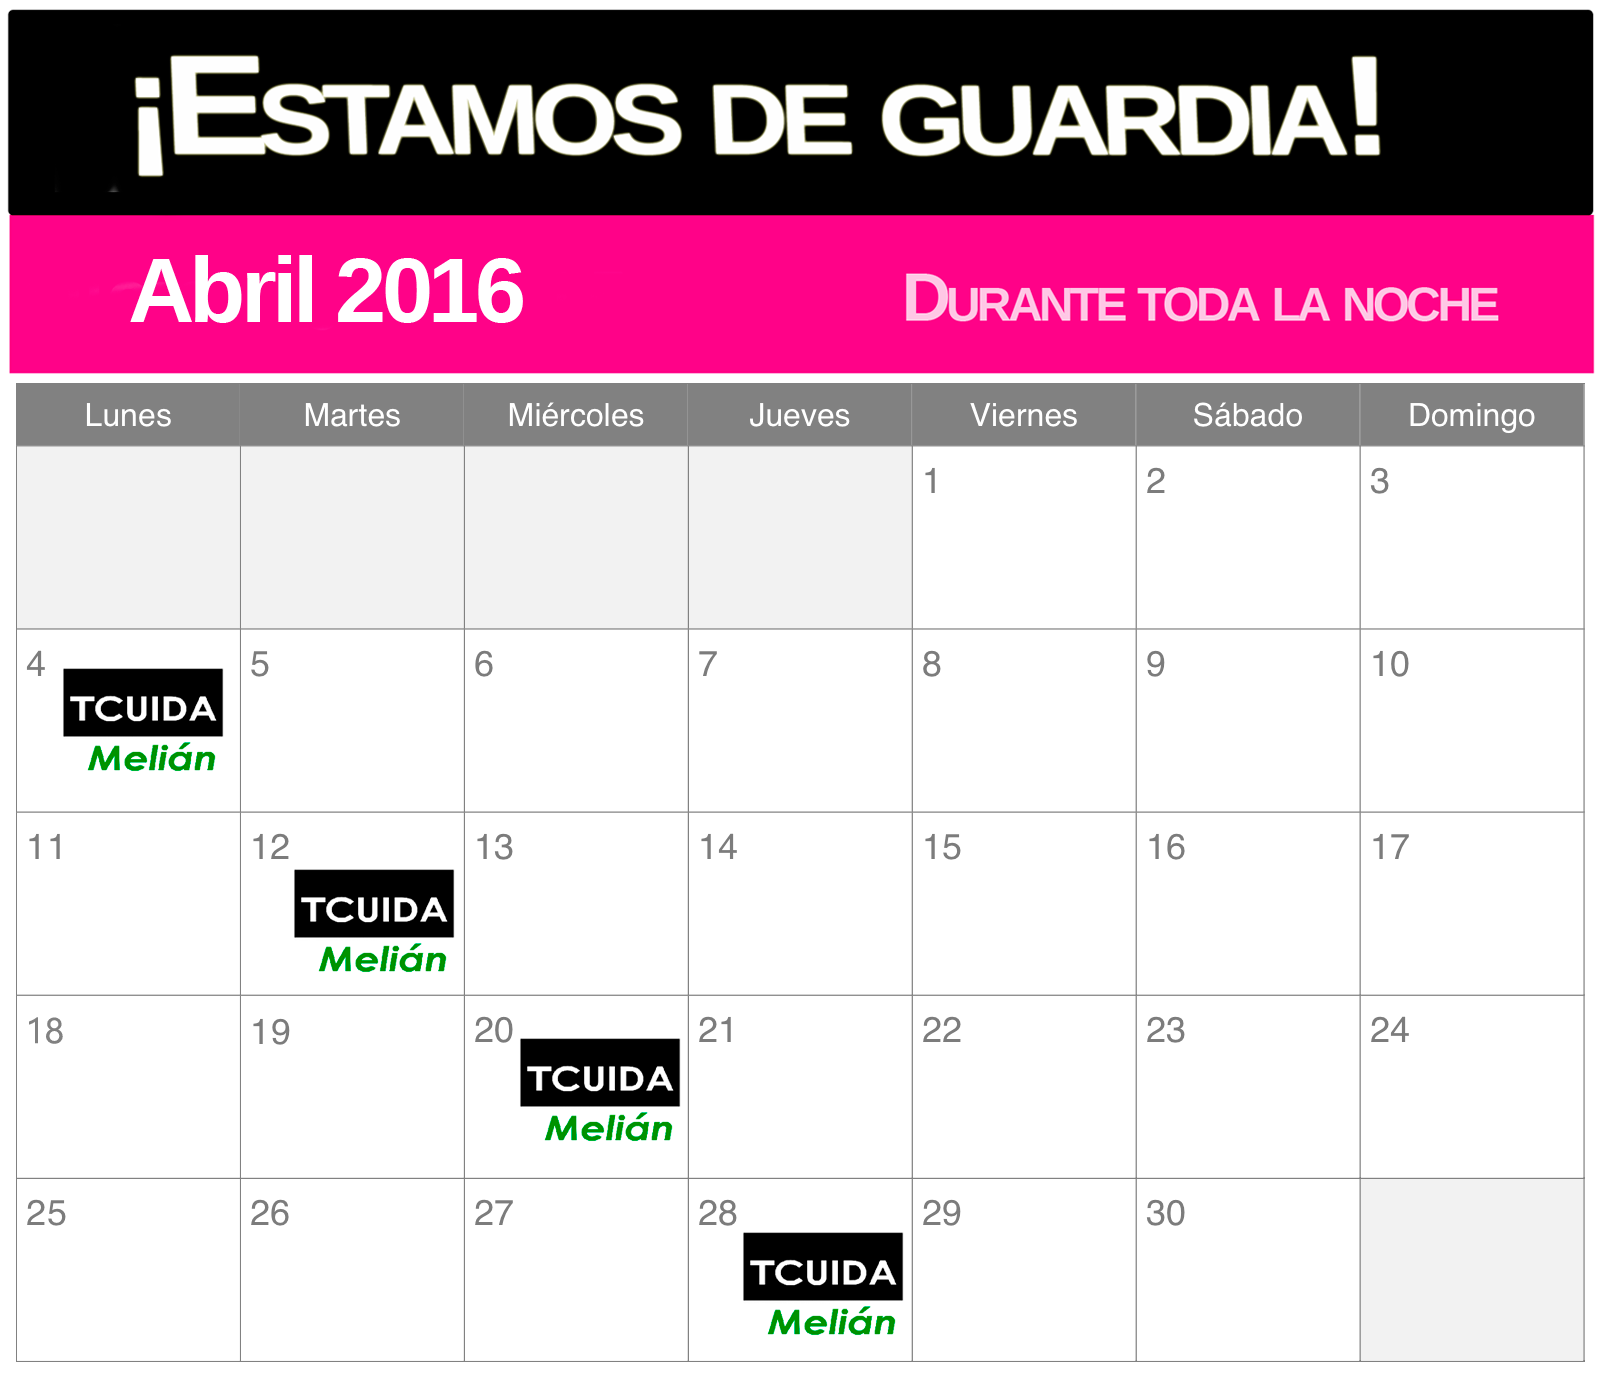 TC-guardia-abril-2016-(1)